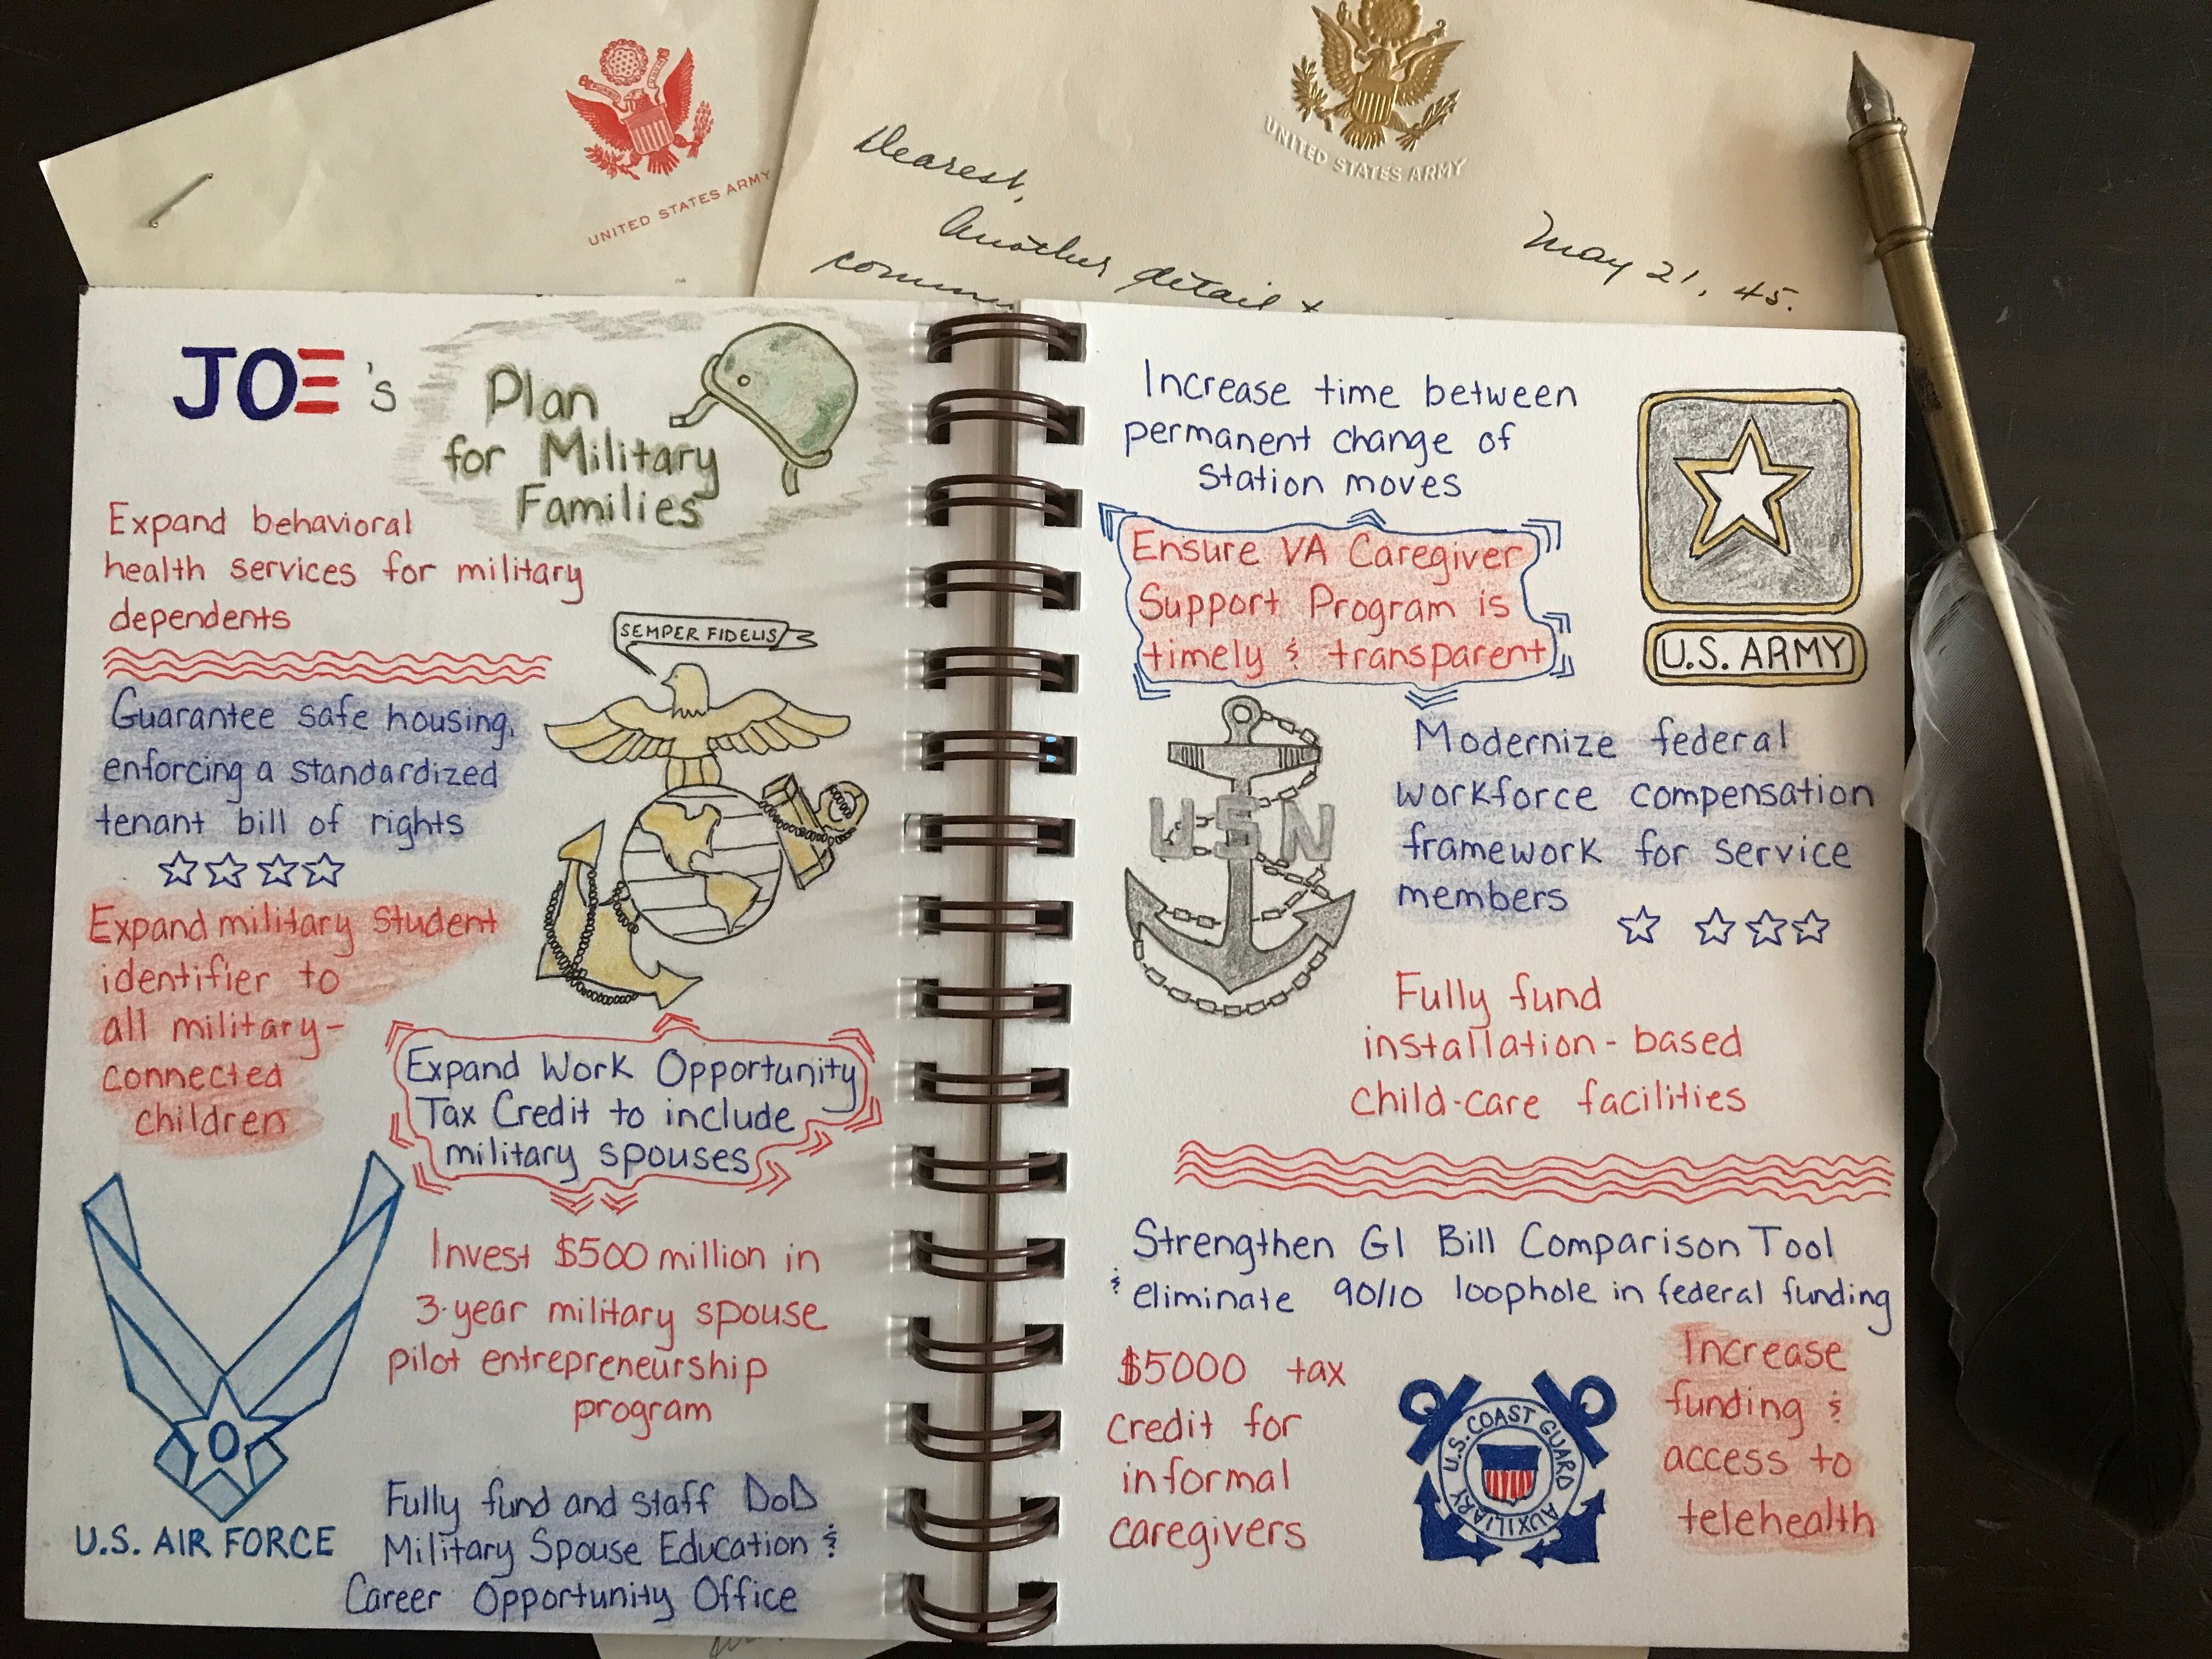 Plan To Fulfill Our Commitment To Military Families Joe Biden Bullet Journal Journal How To Plan